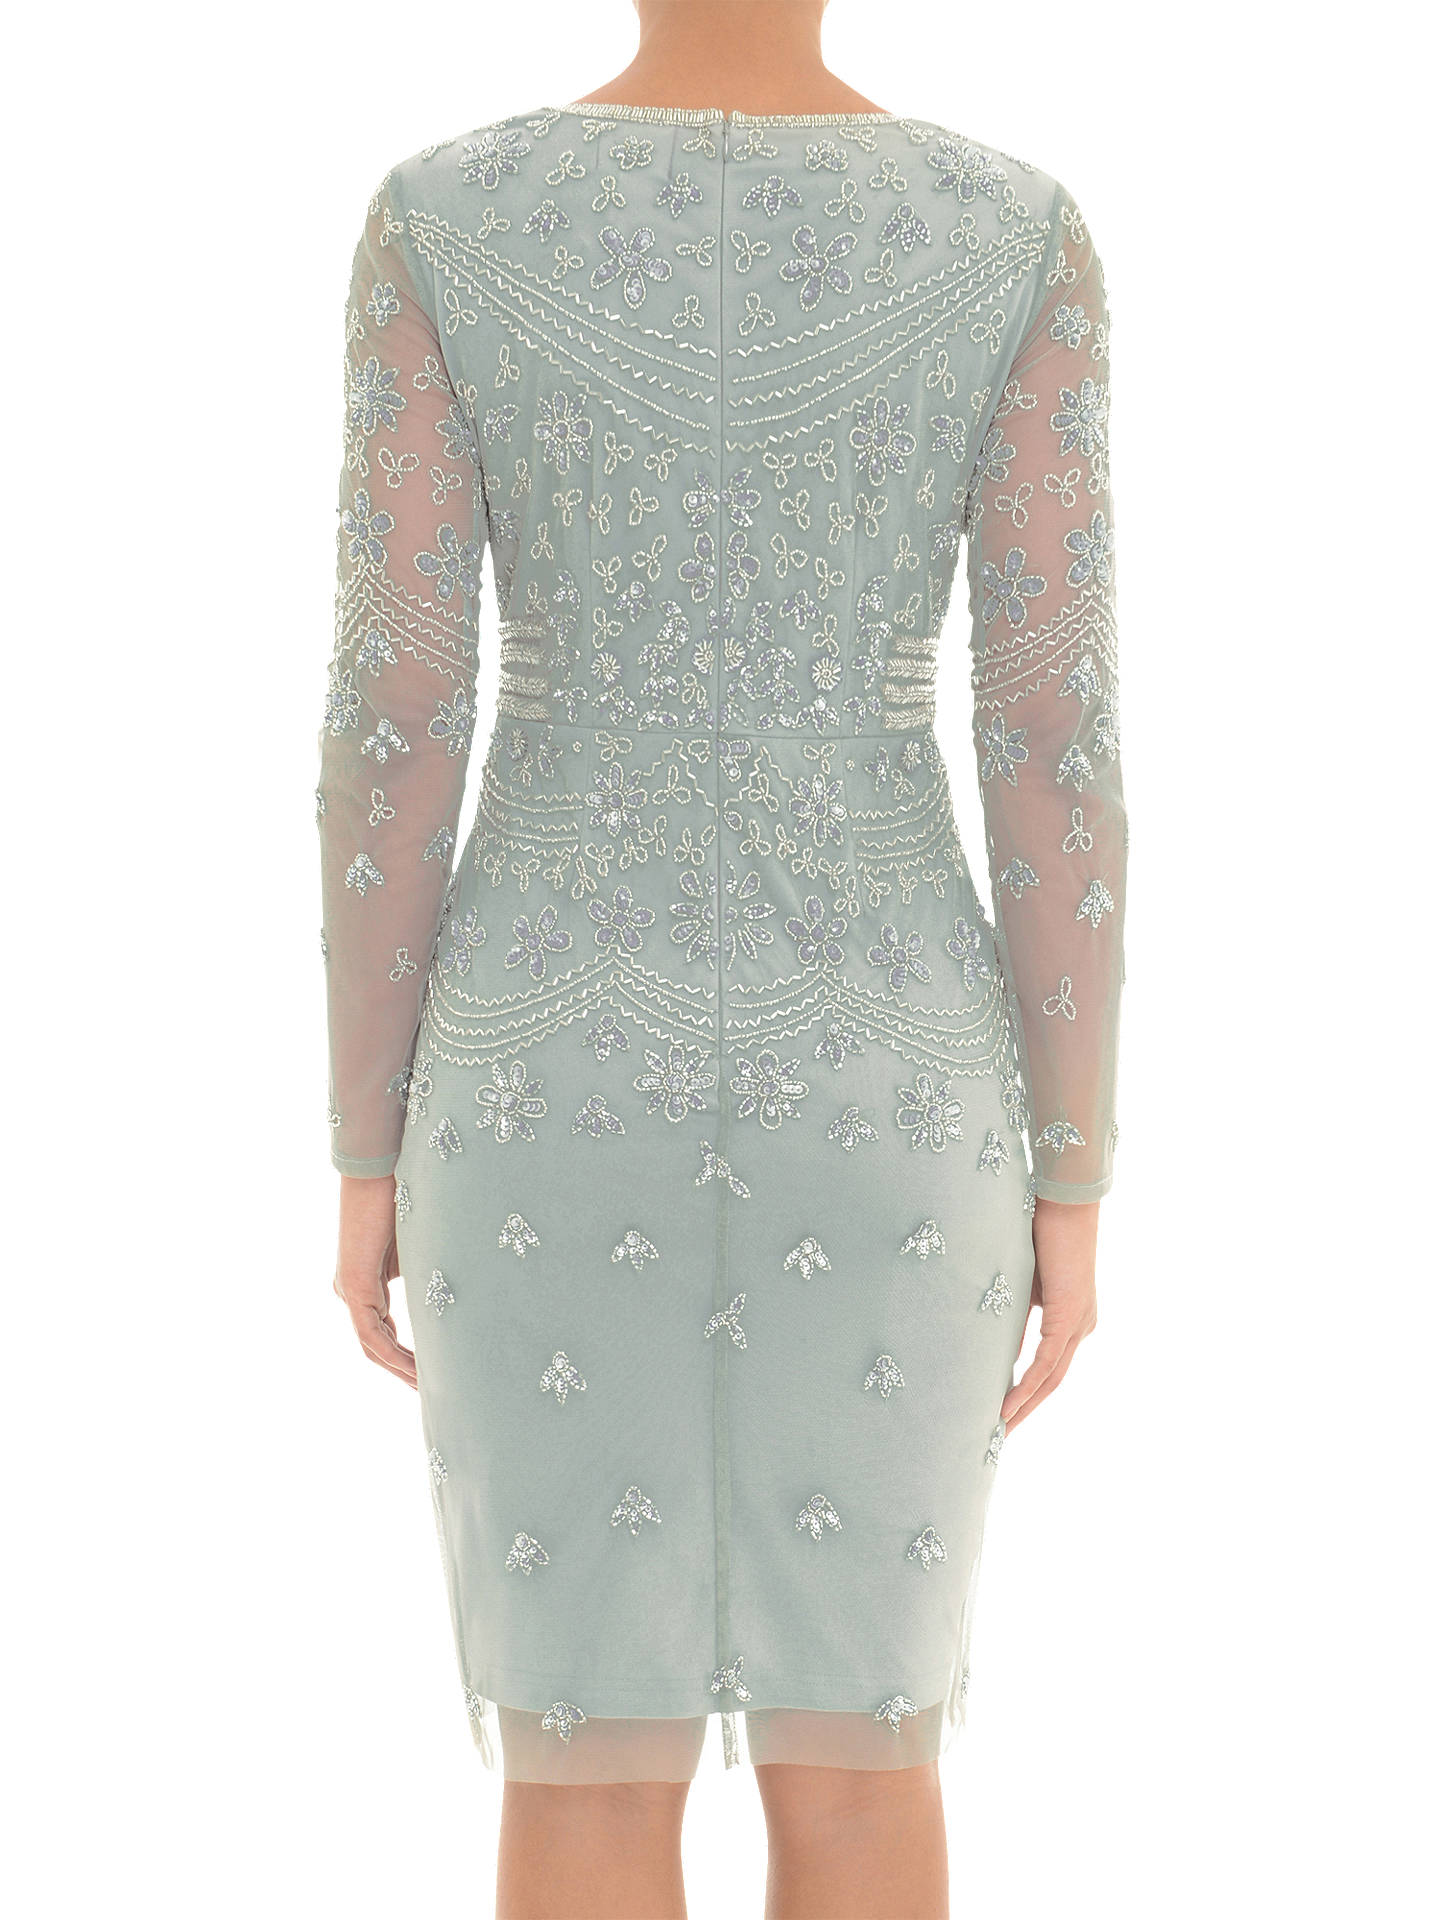 BuyAdrianna Papell Long Sleeve Beaded Dress, Blue Mist, 8 Online at johnlewis.com